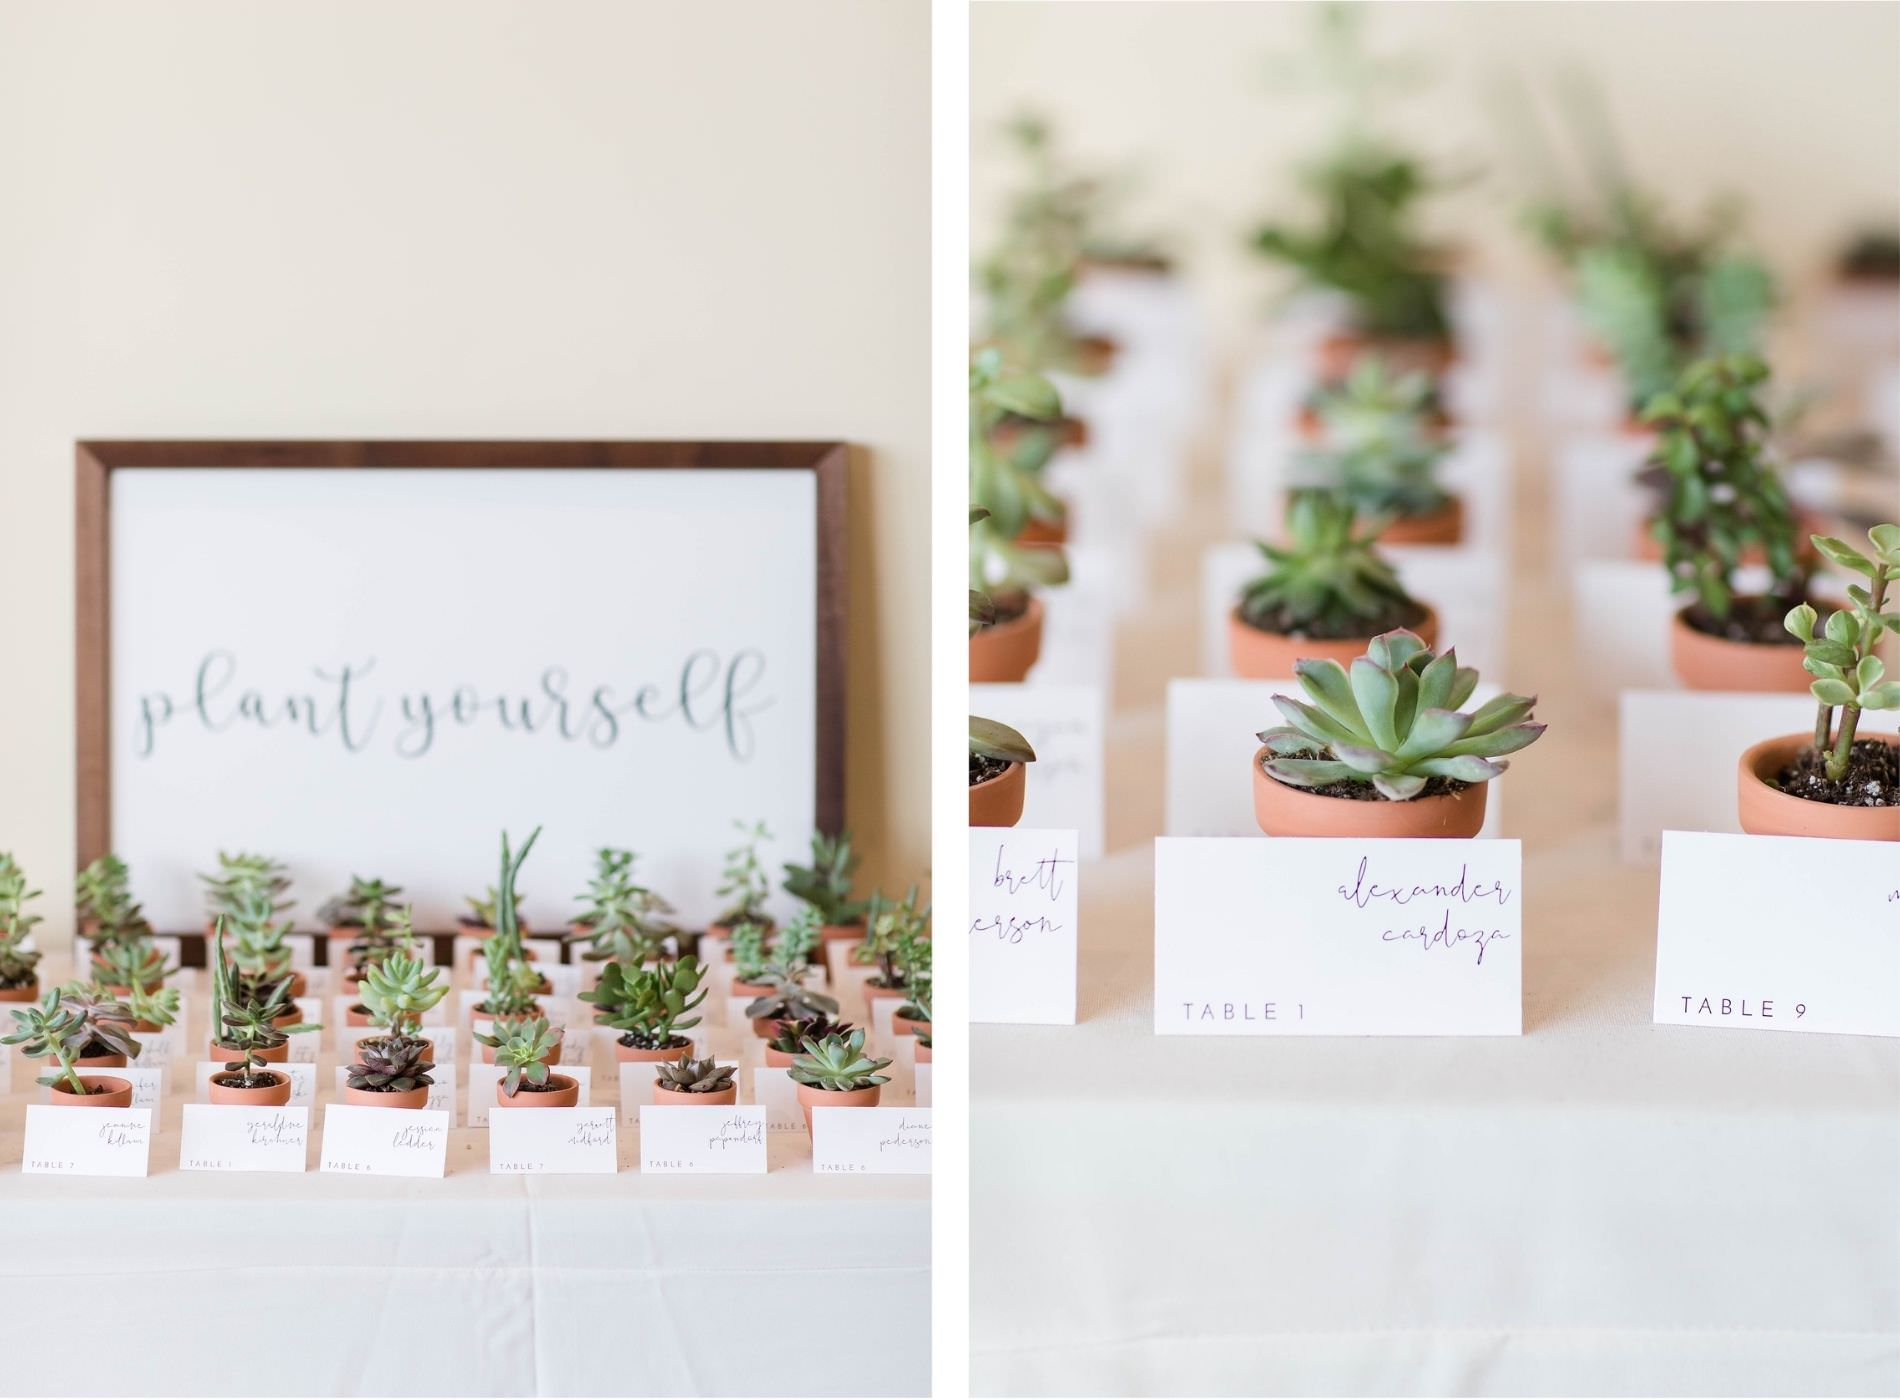 Natural Green And White Wedding Favor Inspiration Plant Yourself Escort Card Display Wedding Seating Chart Potted Succulent Cactus Cacti Wedding Favor Escort Cards Marry Me Tampa Bay Local